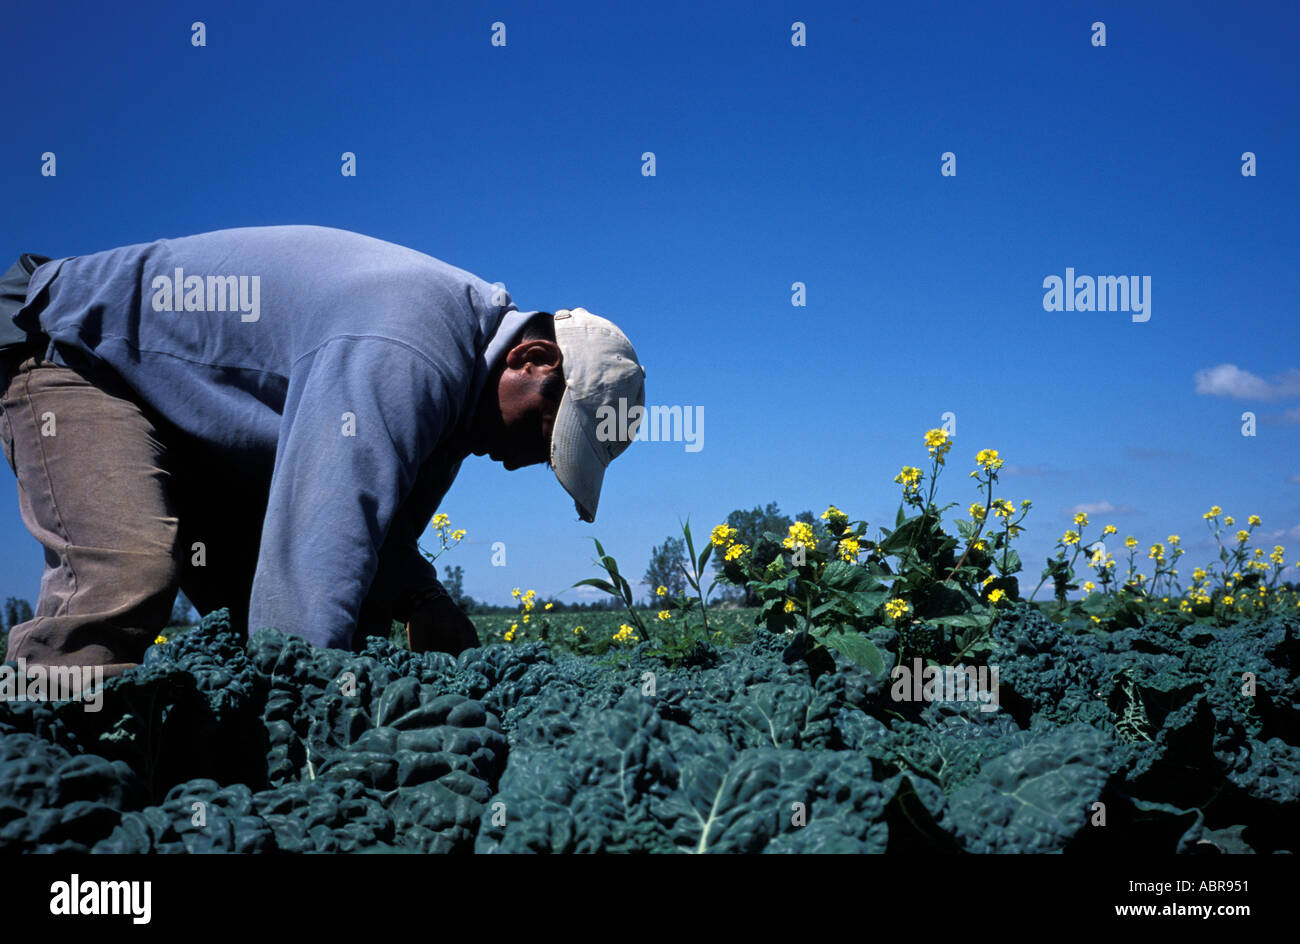 Guatemalan migrant worker on a farm in Quebec Canada - Stock Image